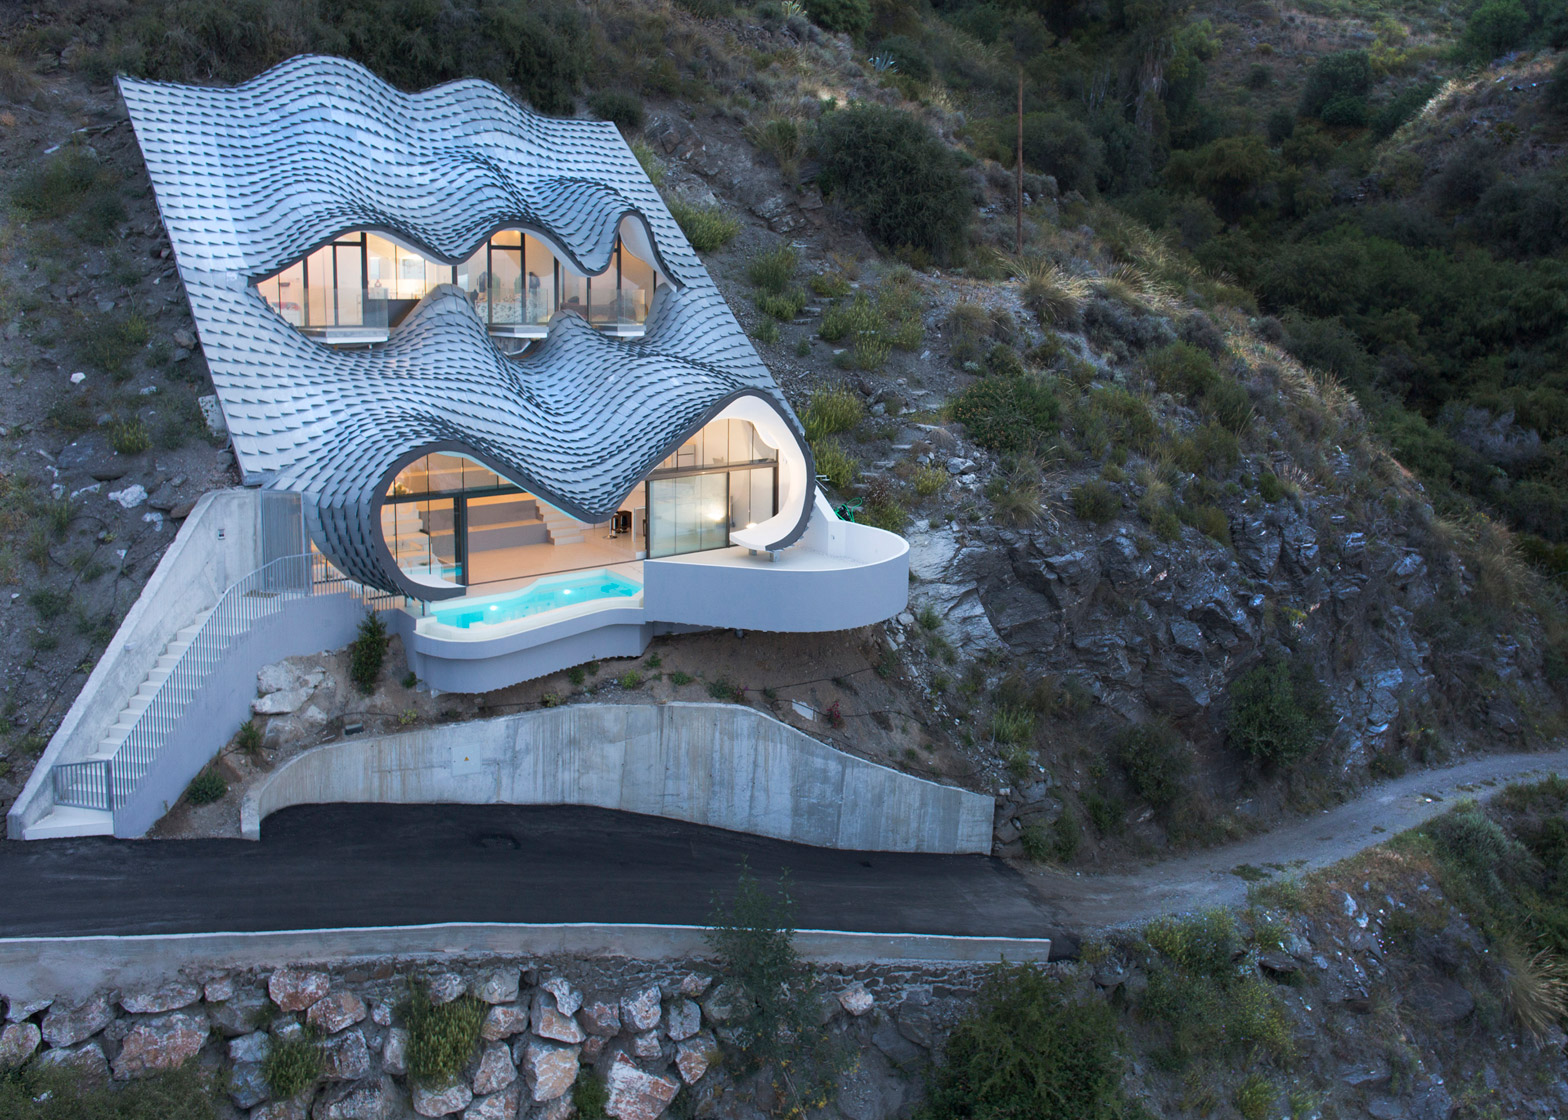 9 Of 9; House On The Cliff By Gilbartolome Architects In Granada, Spain